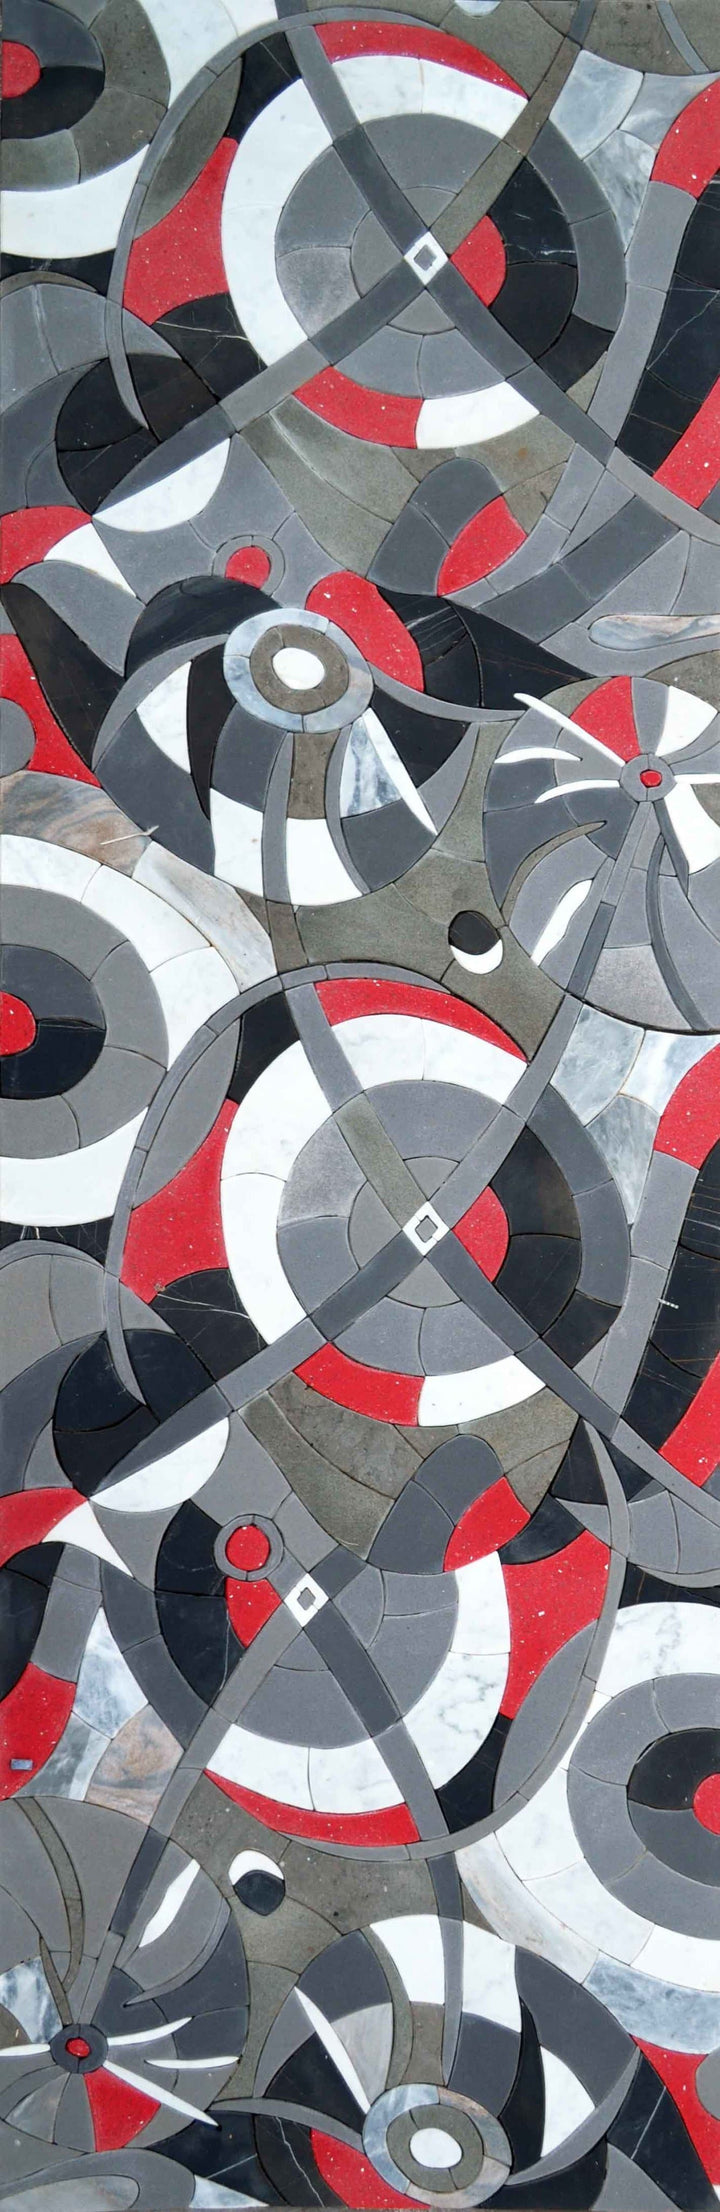 3D Abstract Mosaic - Swirl